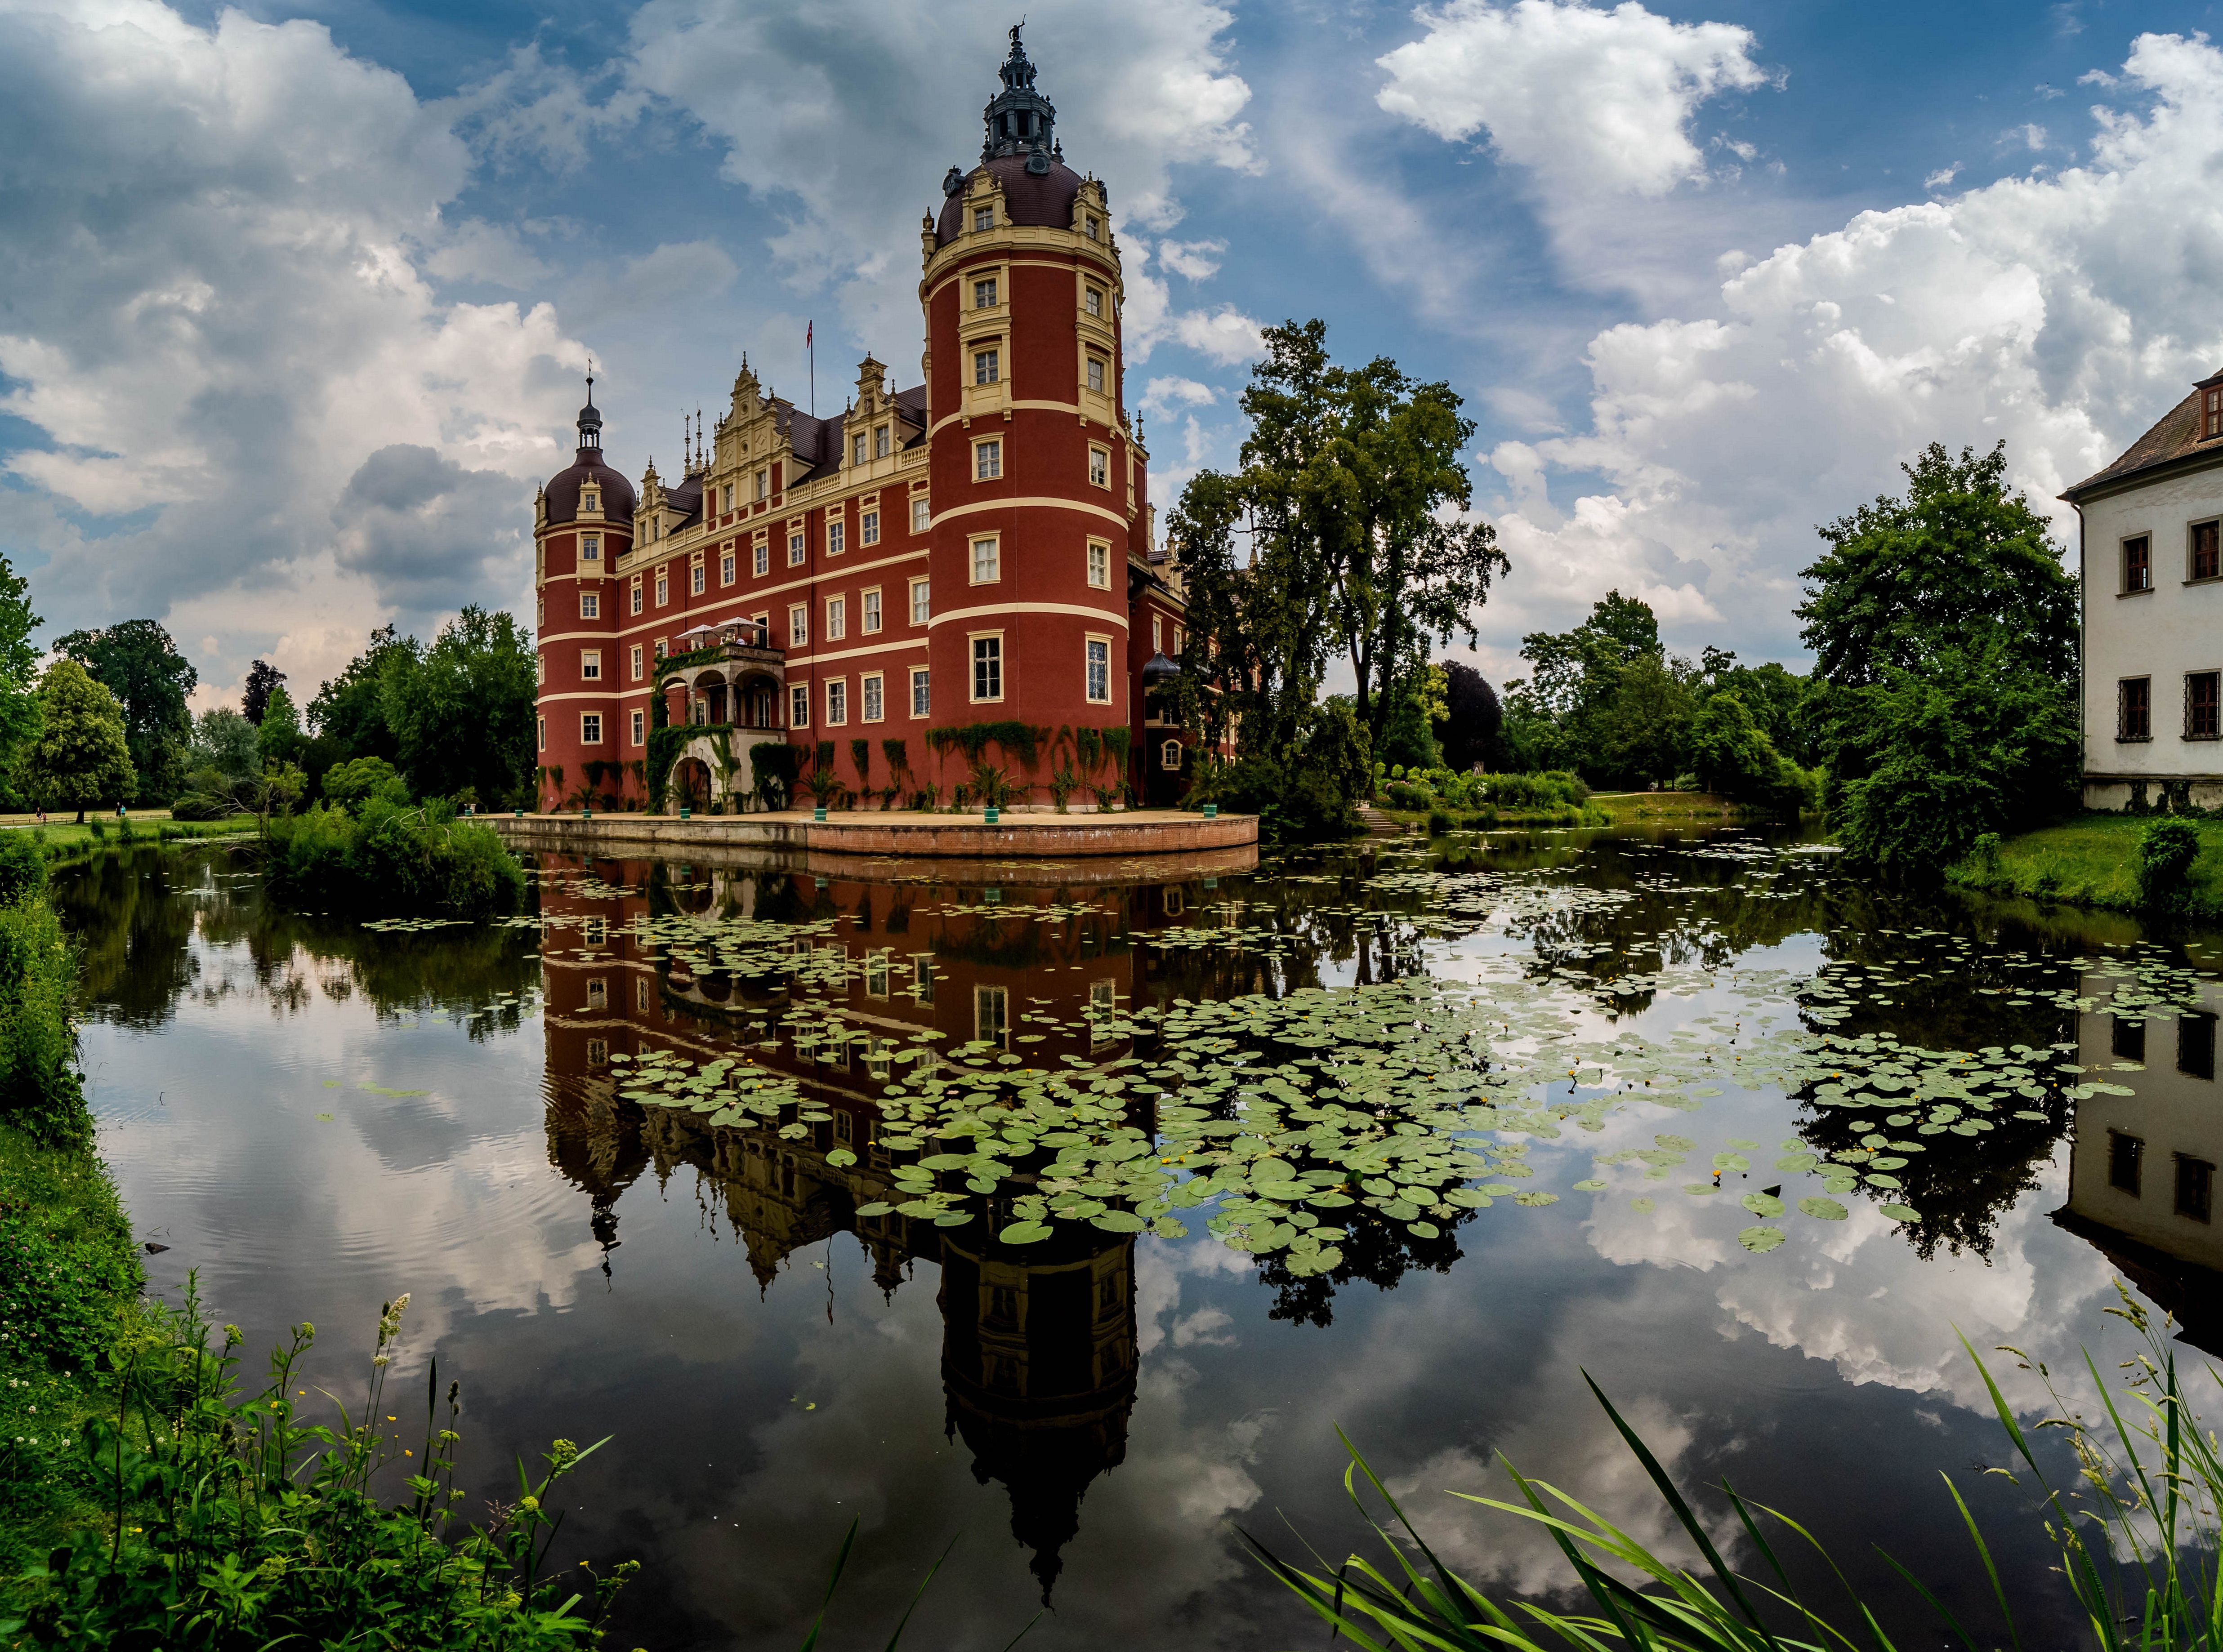 red Castle Muskau on the shore on the lake